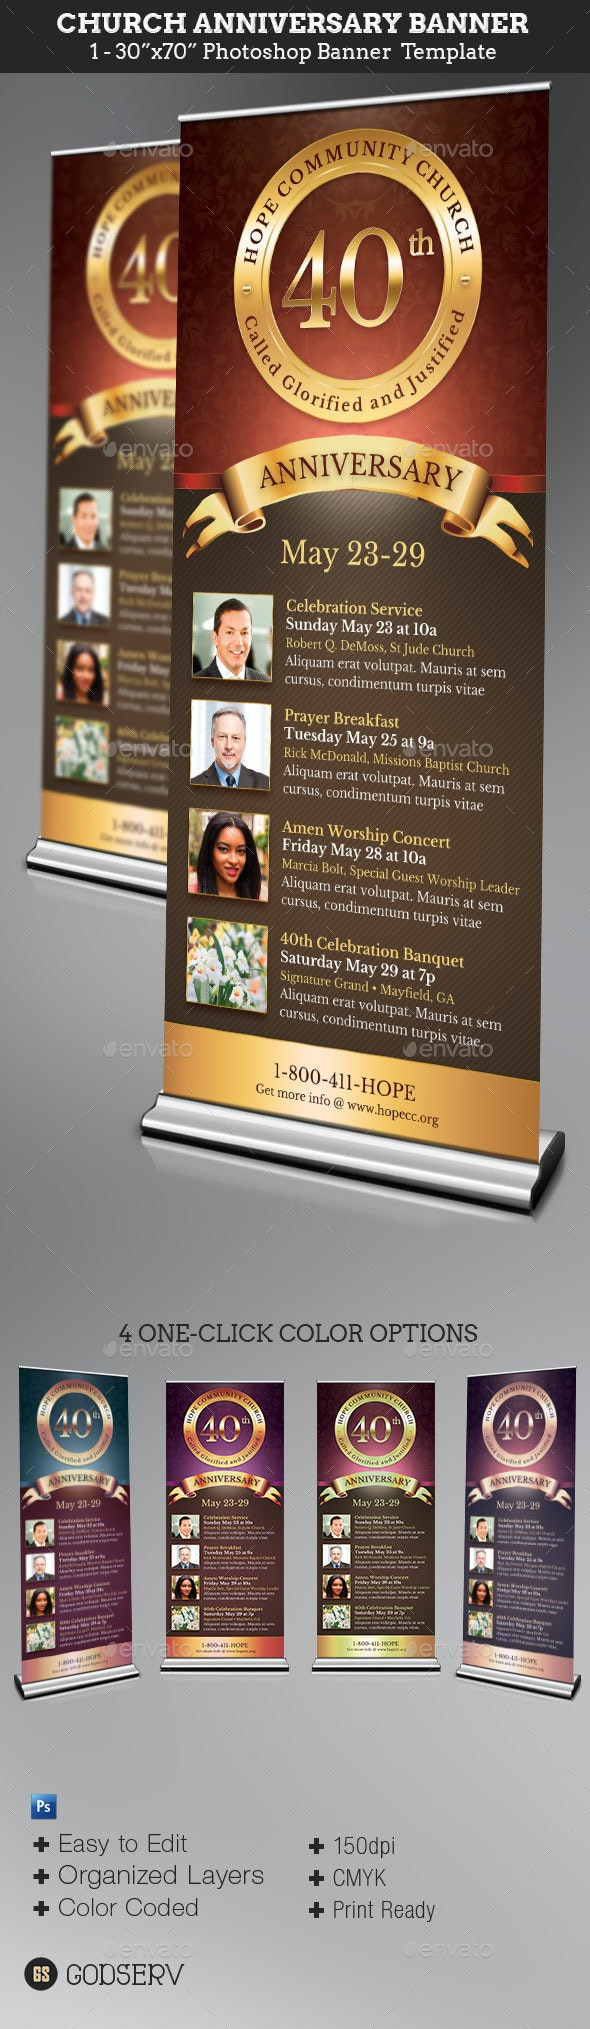 Church Anniversary Banner Template - Signage Print Templates